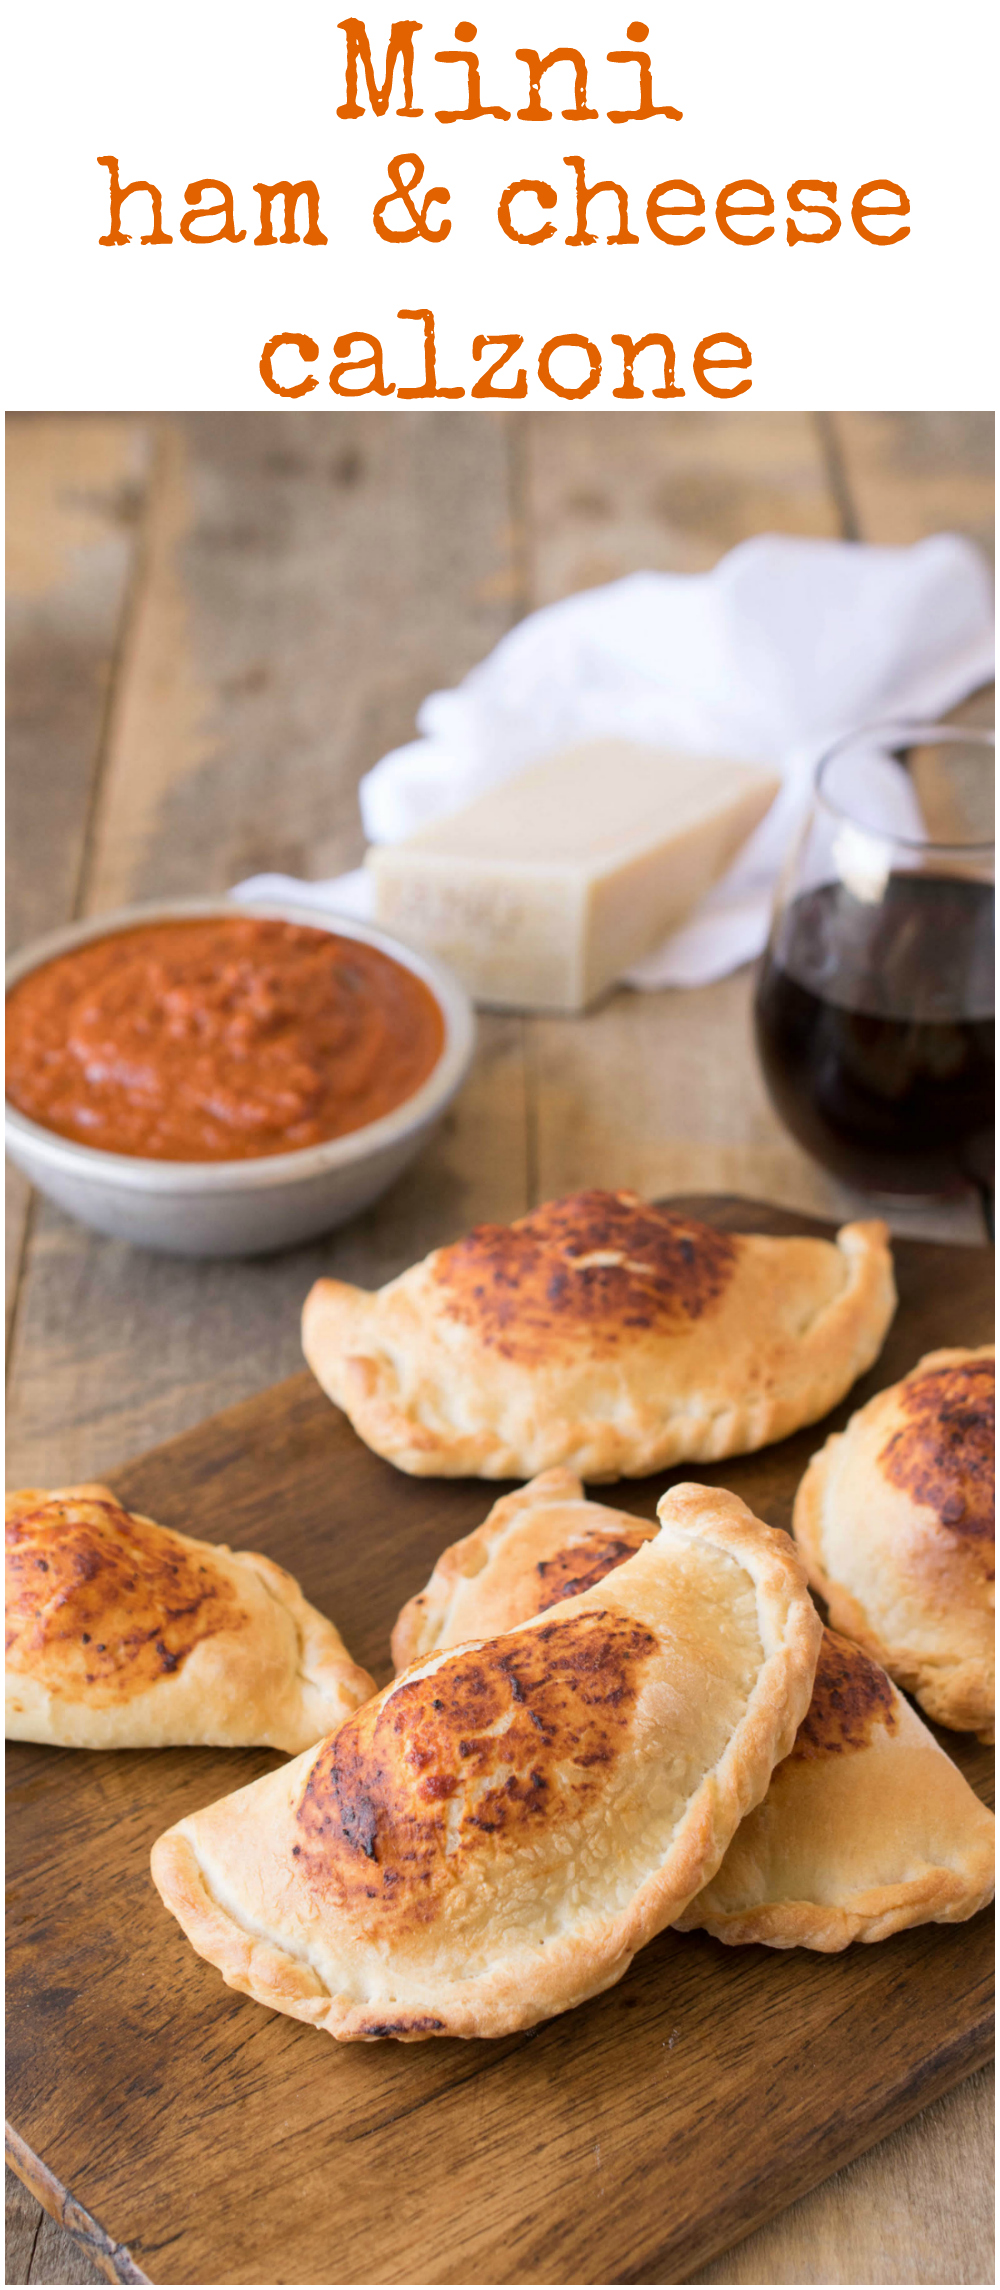 Mini ham & cheese calzones are easy to make. Homemade pizza dough filled with tomato sauce, ham and cheese. They give pizza night a whole new meaning for kids and adults.